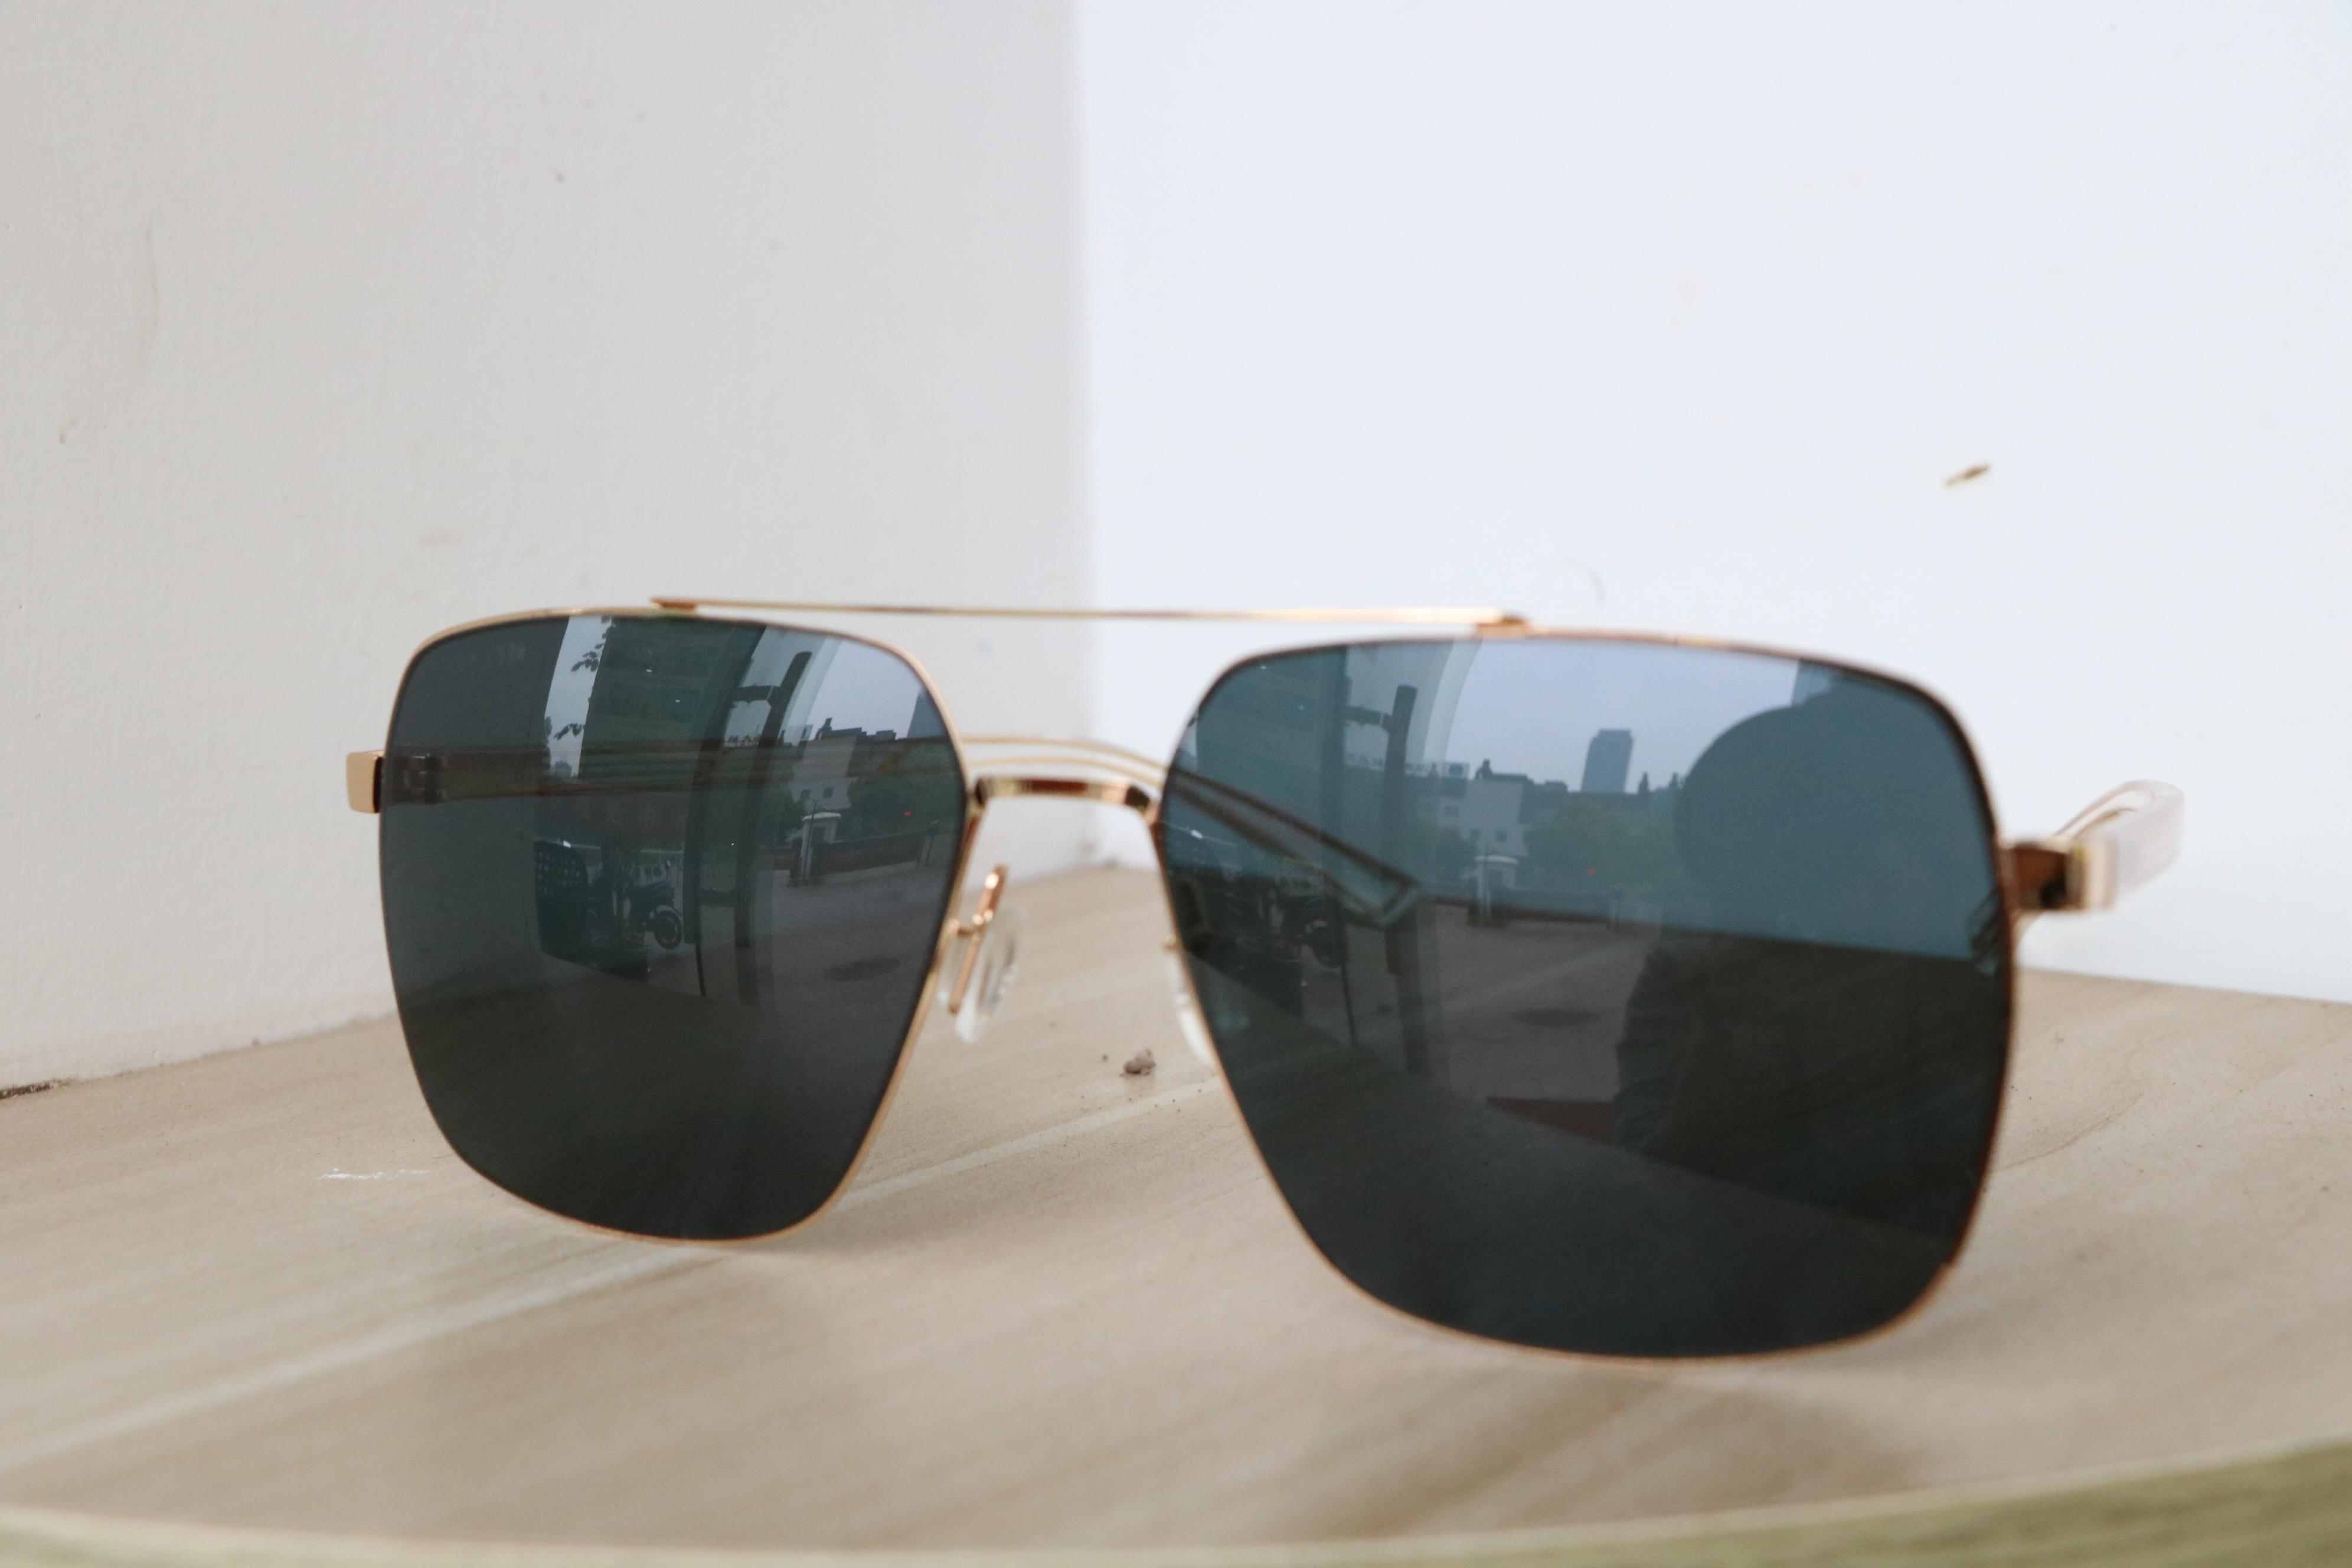 a631c7f8e3 Bolon Polarized Sunglasses 2019 New Arrival Women Fashion Sunglasses Cool  Lovely Young Party Street Snap Driving Sunglasses Eyewear glasses